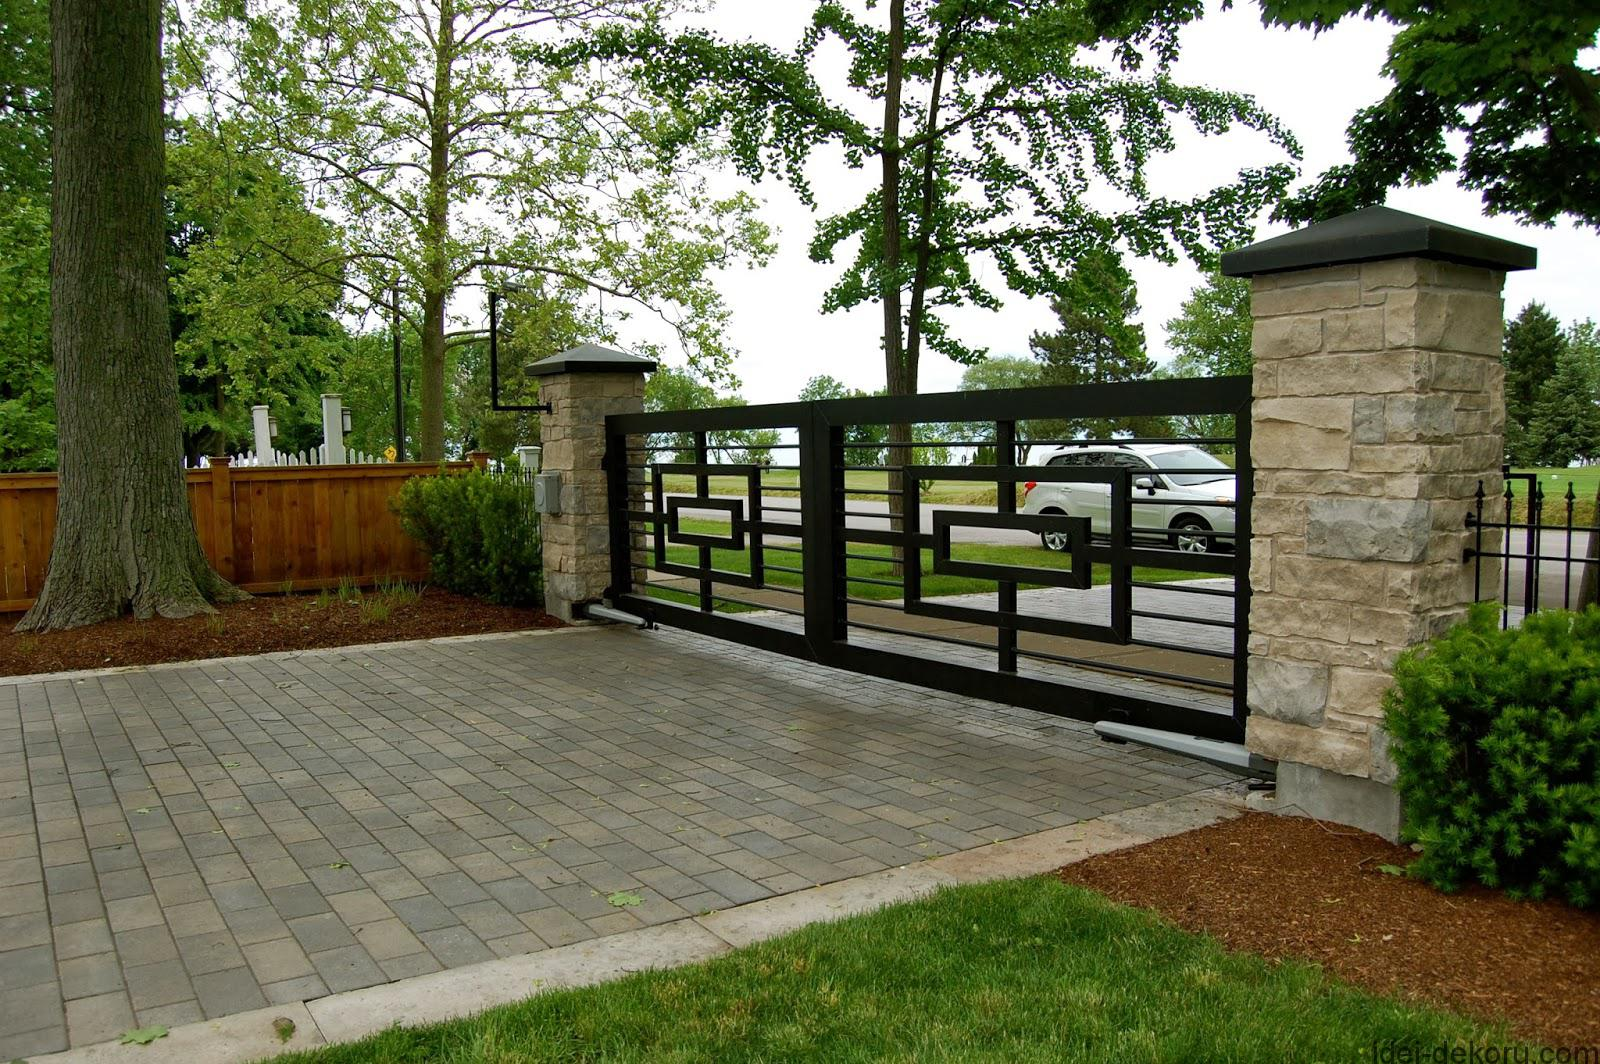 modern-brick-and-iron-fence-designs-doors-gates-and-entryways-classic-modern-house-gates-and-fences-designs